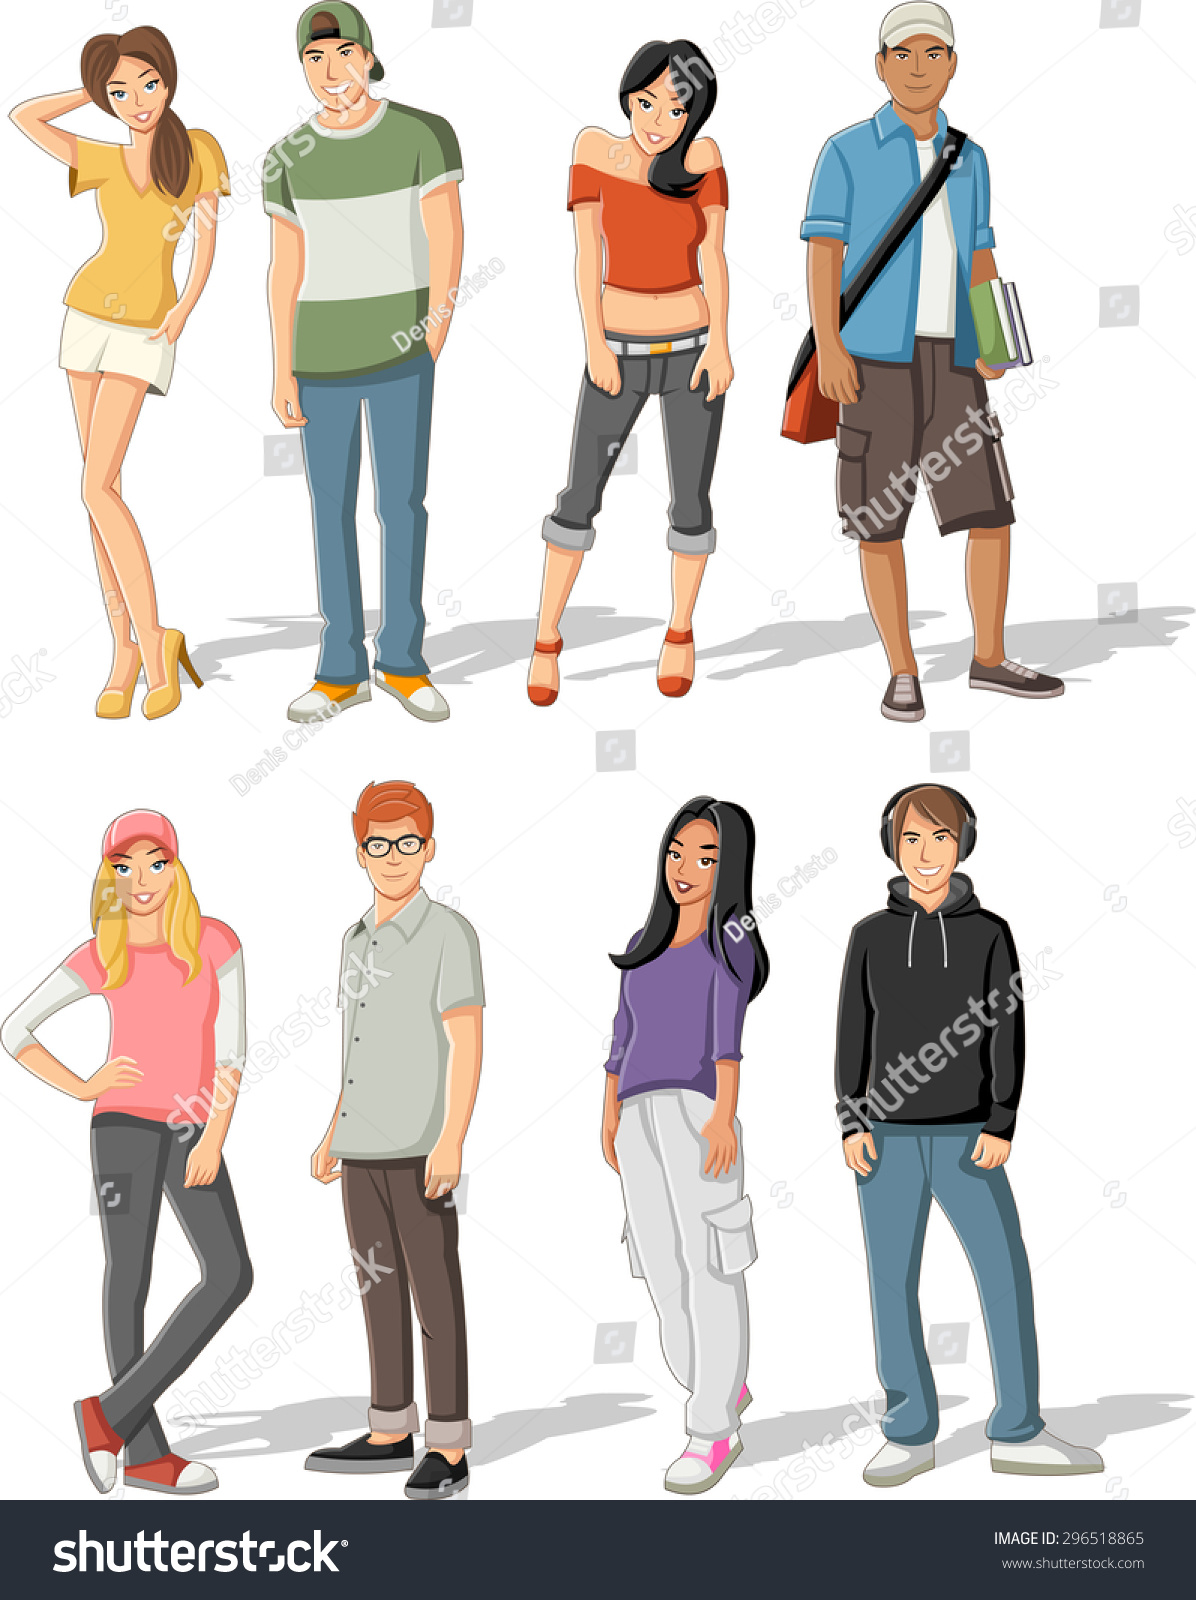 Group Of Fashion Cartoon Young People Teenagers Stock Vector Illustration 296518865 Shutterstock